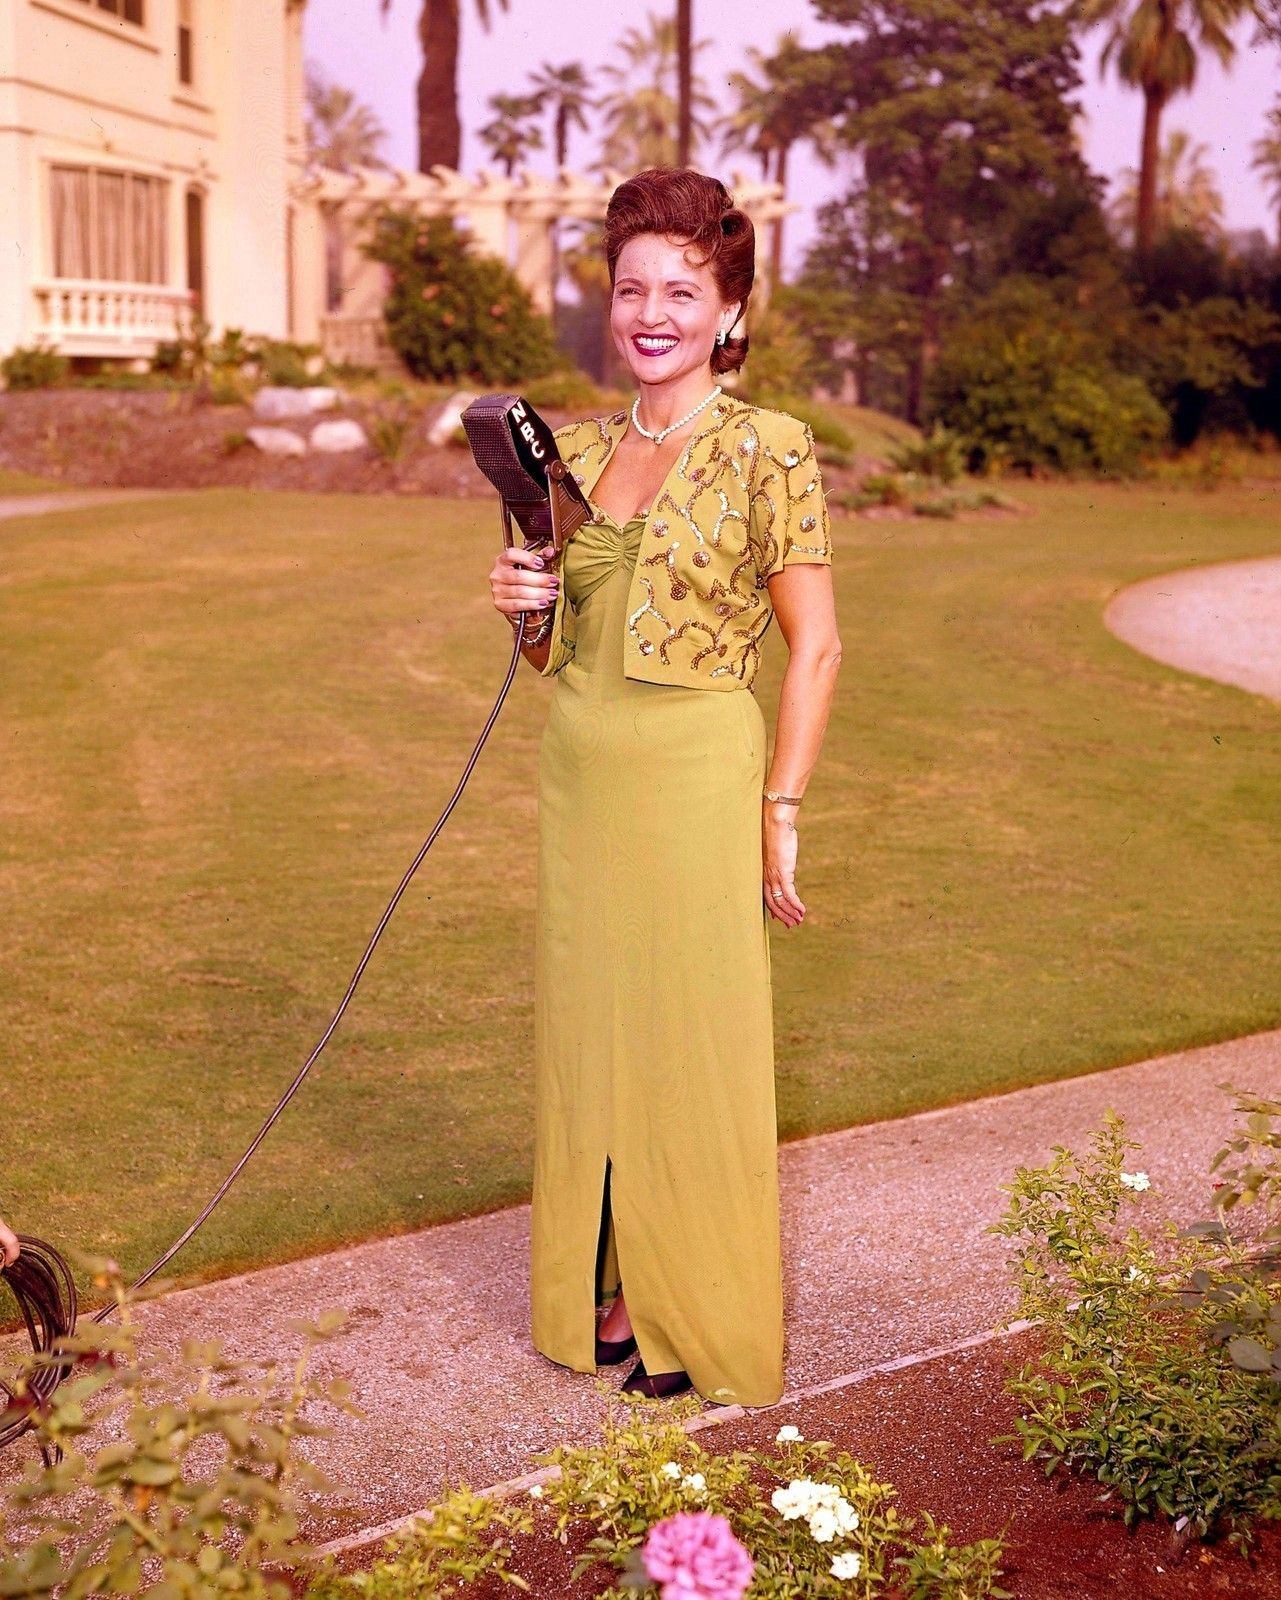 Betty white 1940 vintage photos pinterest betty for How old was betty white in golden girls